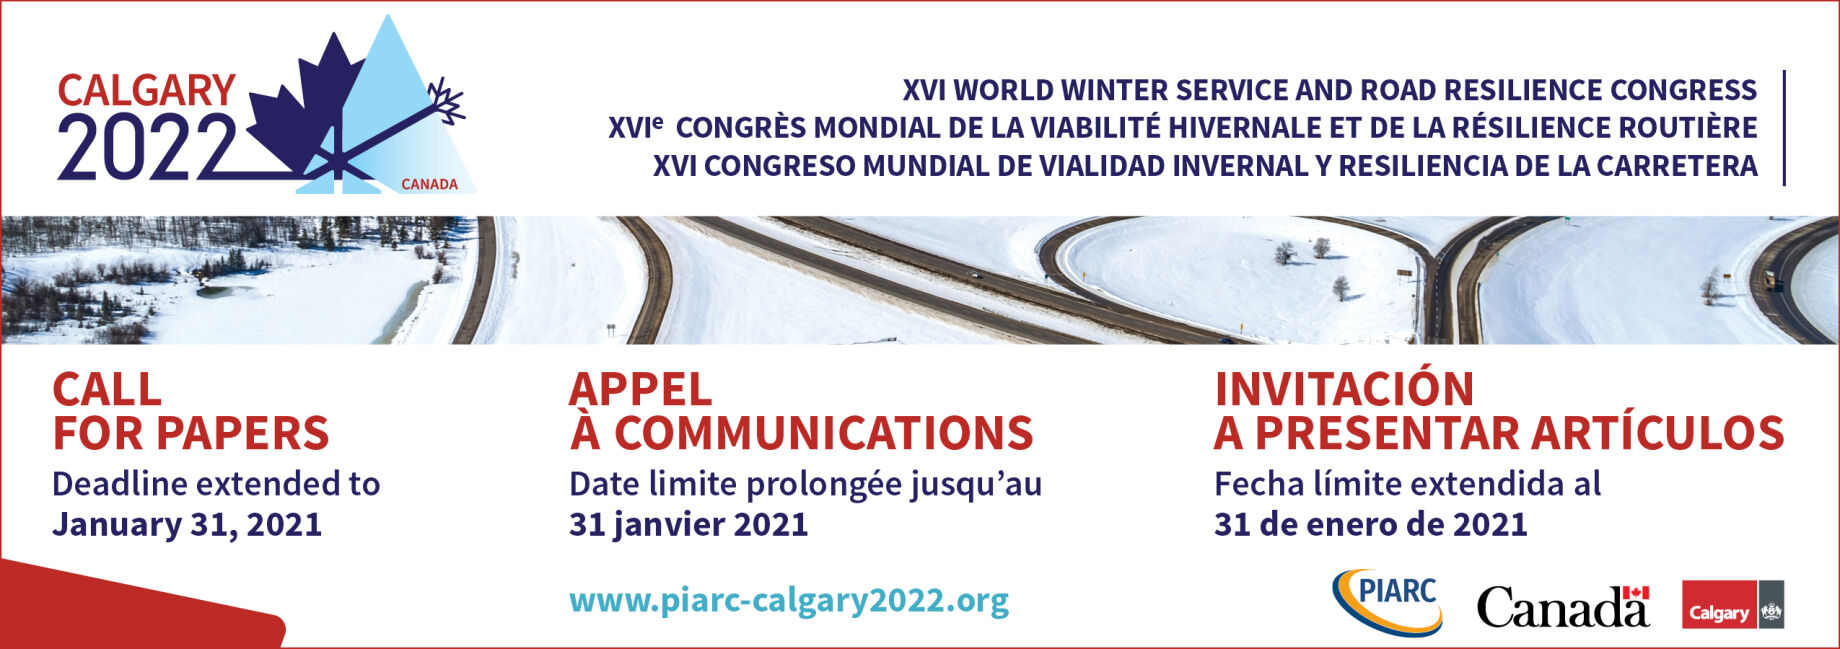 Are you an expert in winter service or road resilience? Deadline extended! Submit your abstract before January 31, 2021!